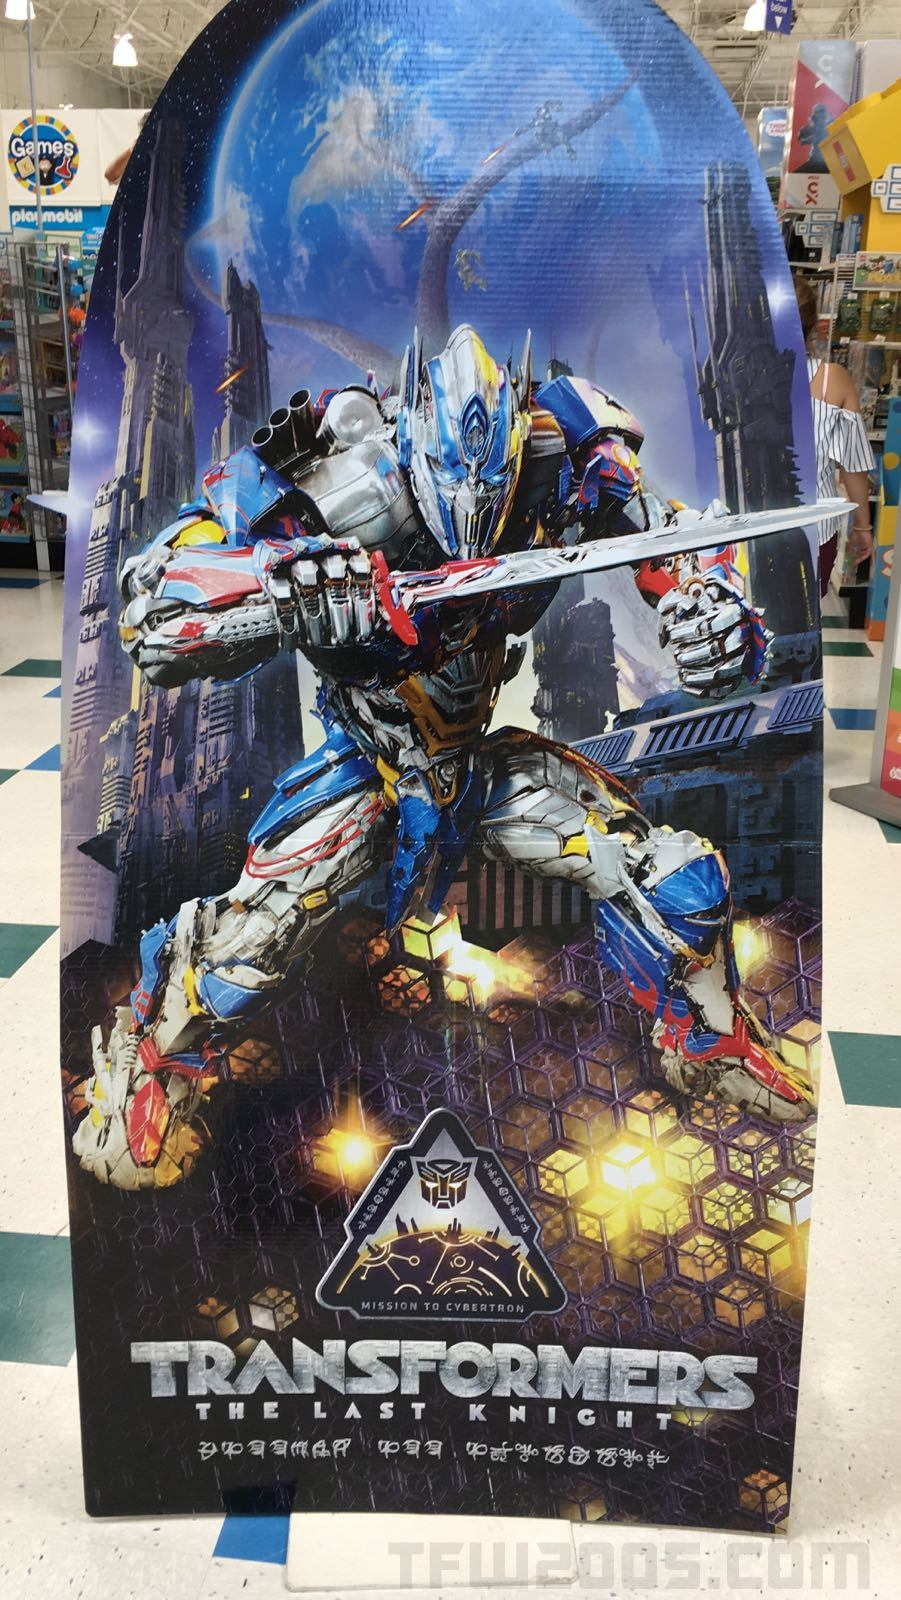 Transformers 5: Le Dernier Chevalier (2017) - Page 5 Transformers-The-Last-Knight-Mission-To-Cybertron-TRU-Exclusive-Subline-Watermarked